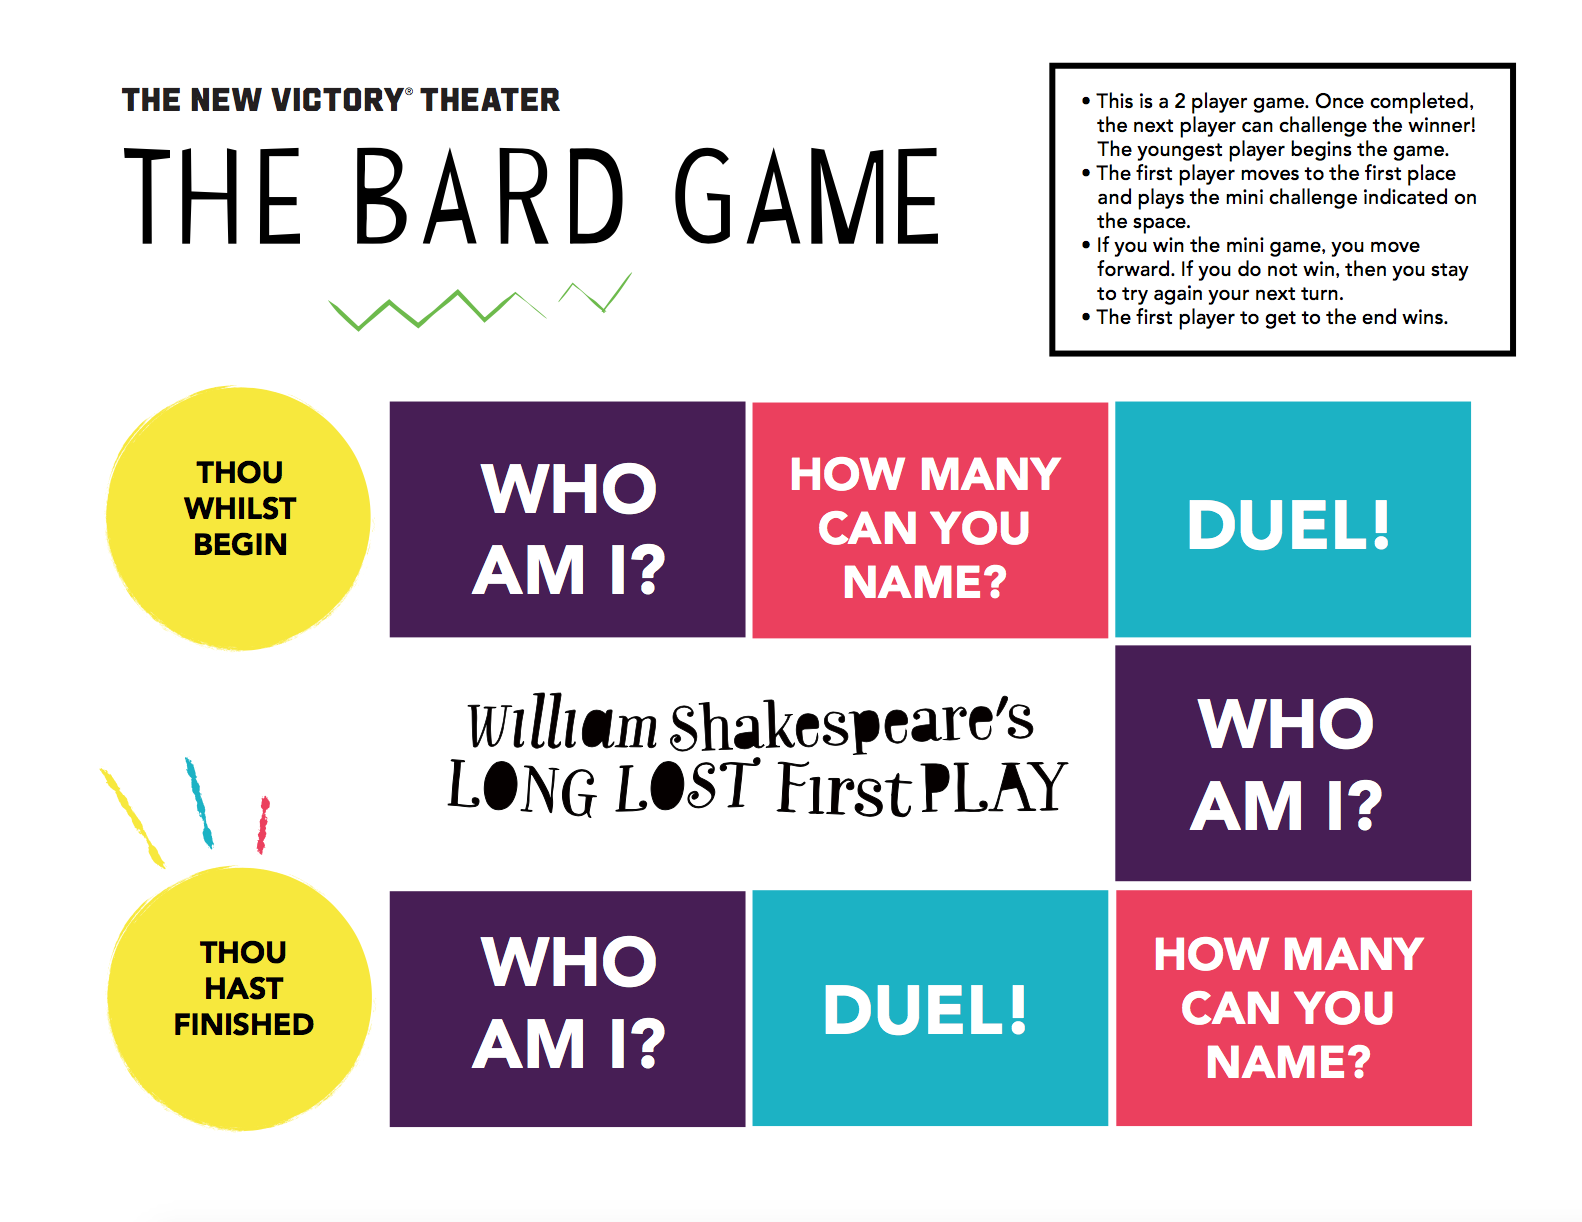 The Bard Game